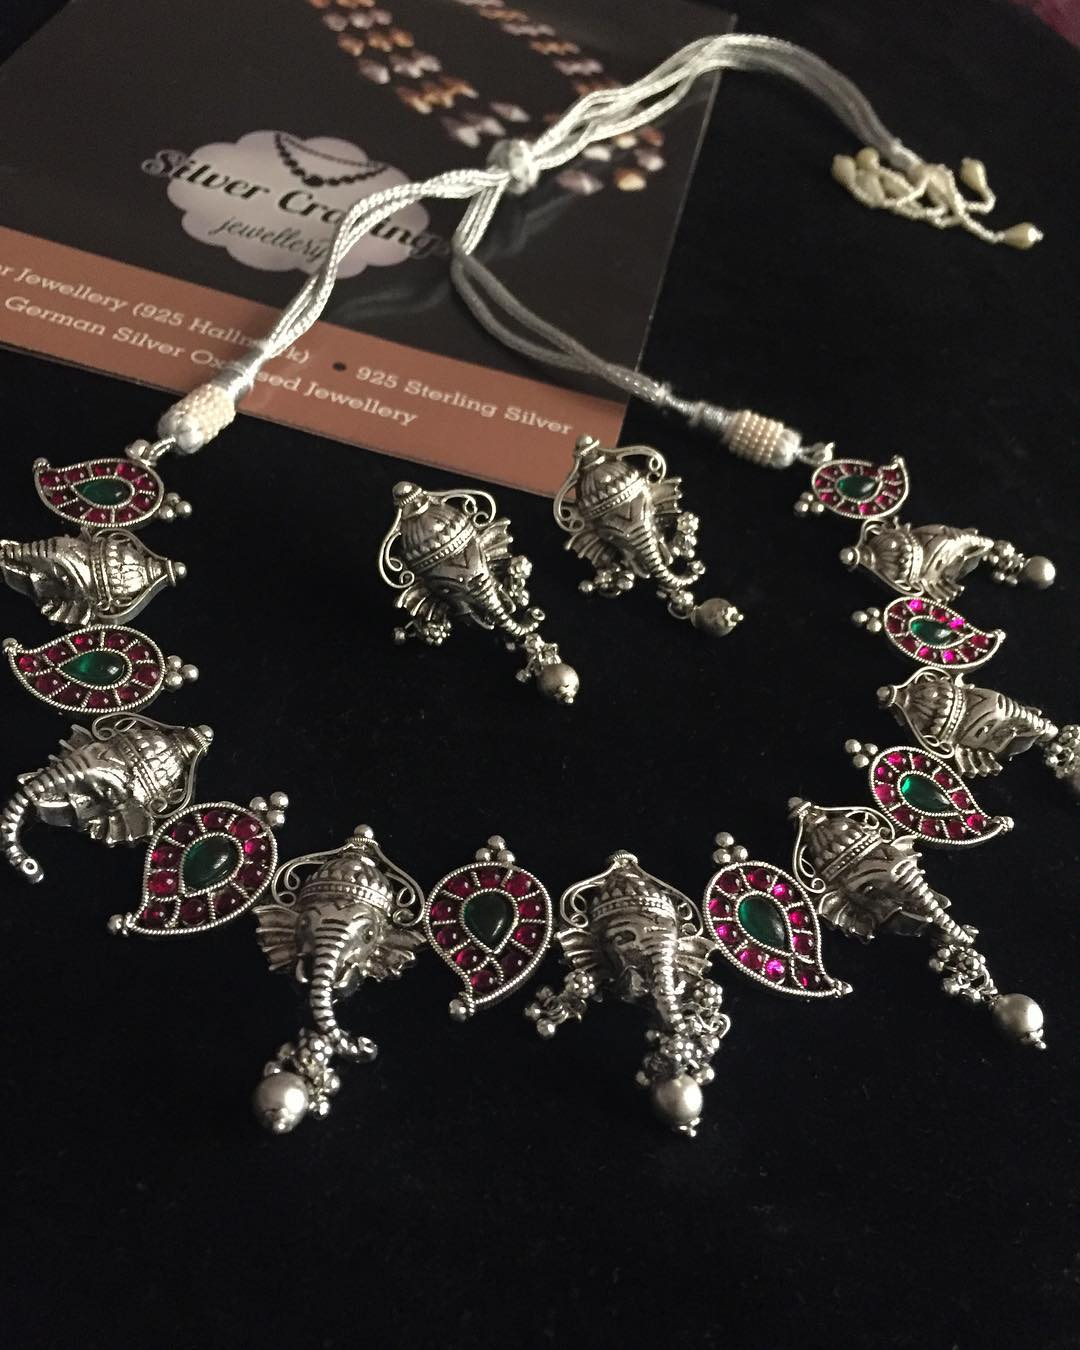 German Silver Ganesa Mango Necklace From Silver Cravings Jewellery